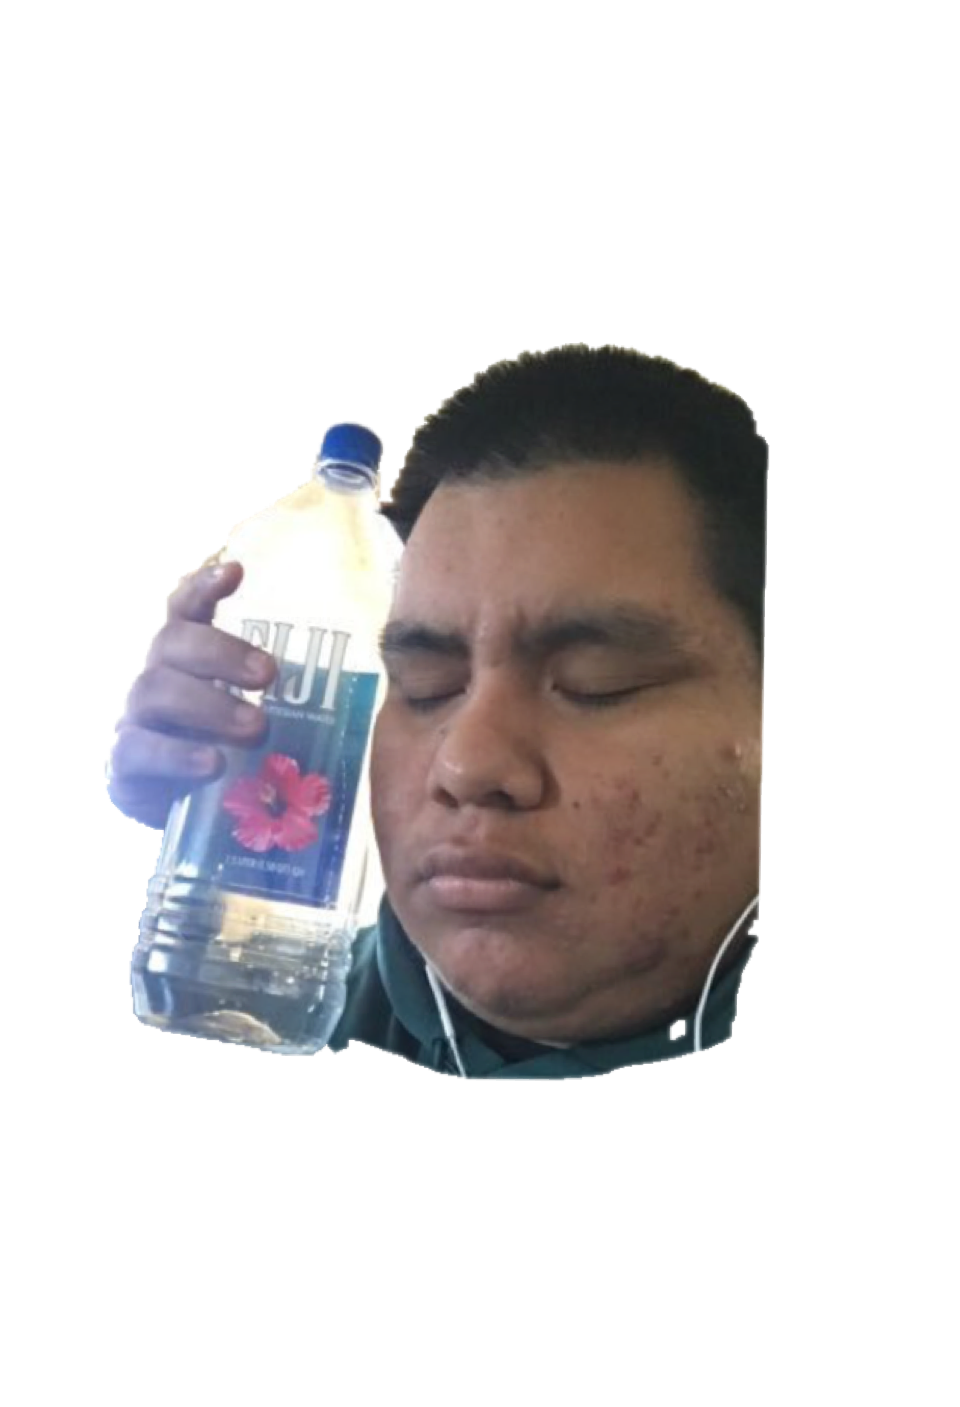 Mexican andy png. New emote ideas for